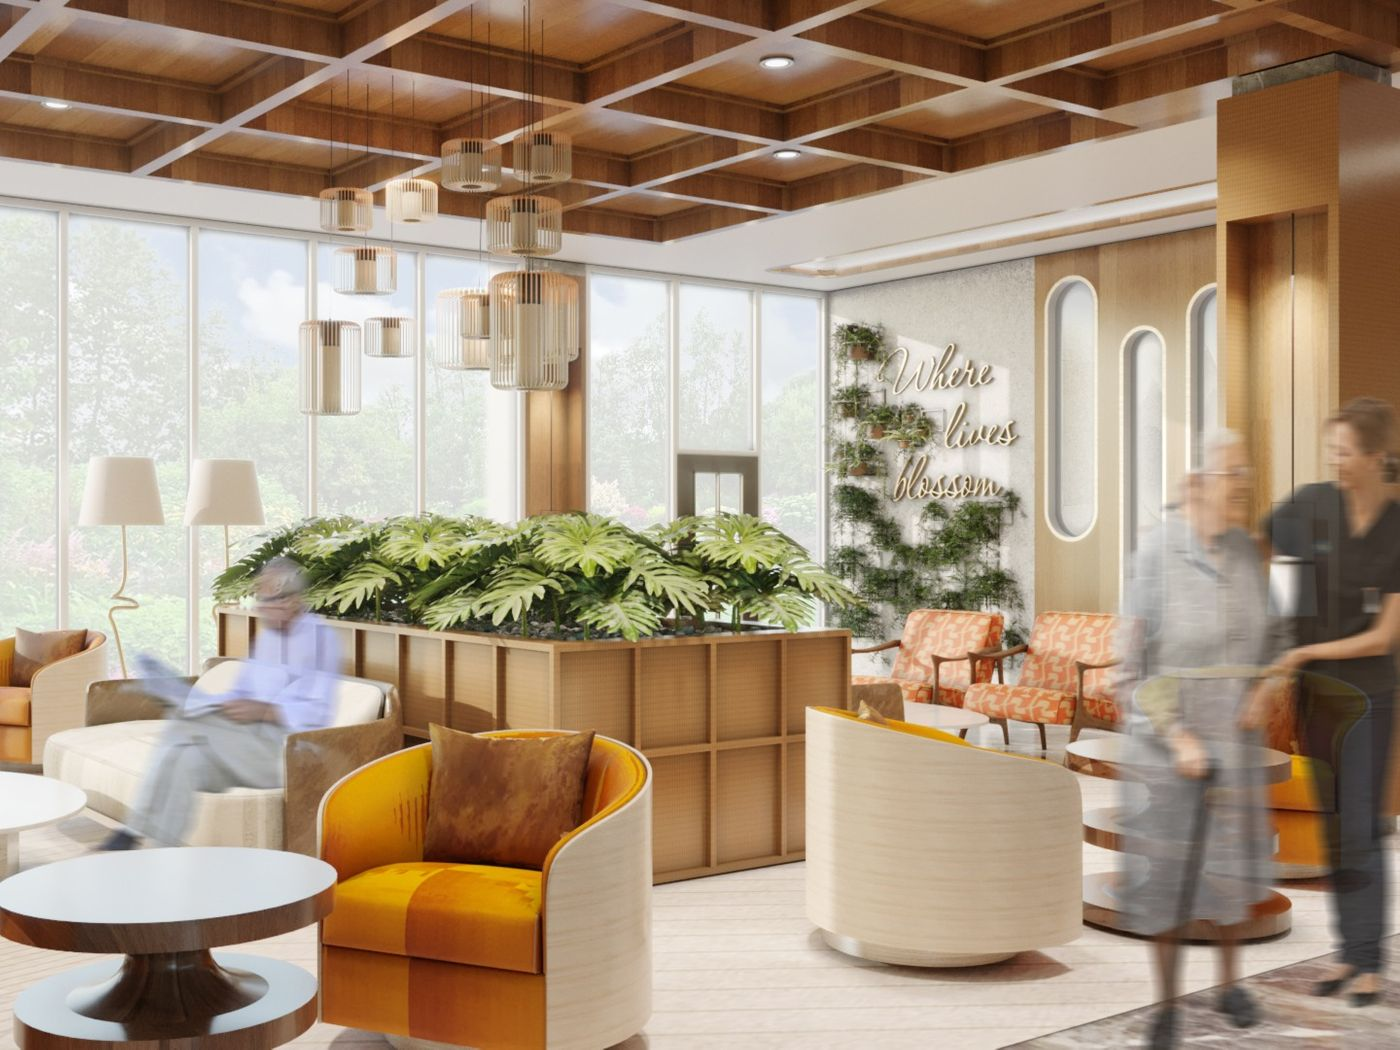 Canterbury Court Assisted Living Center